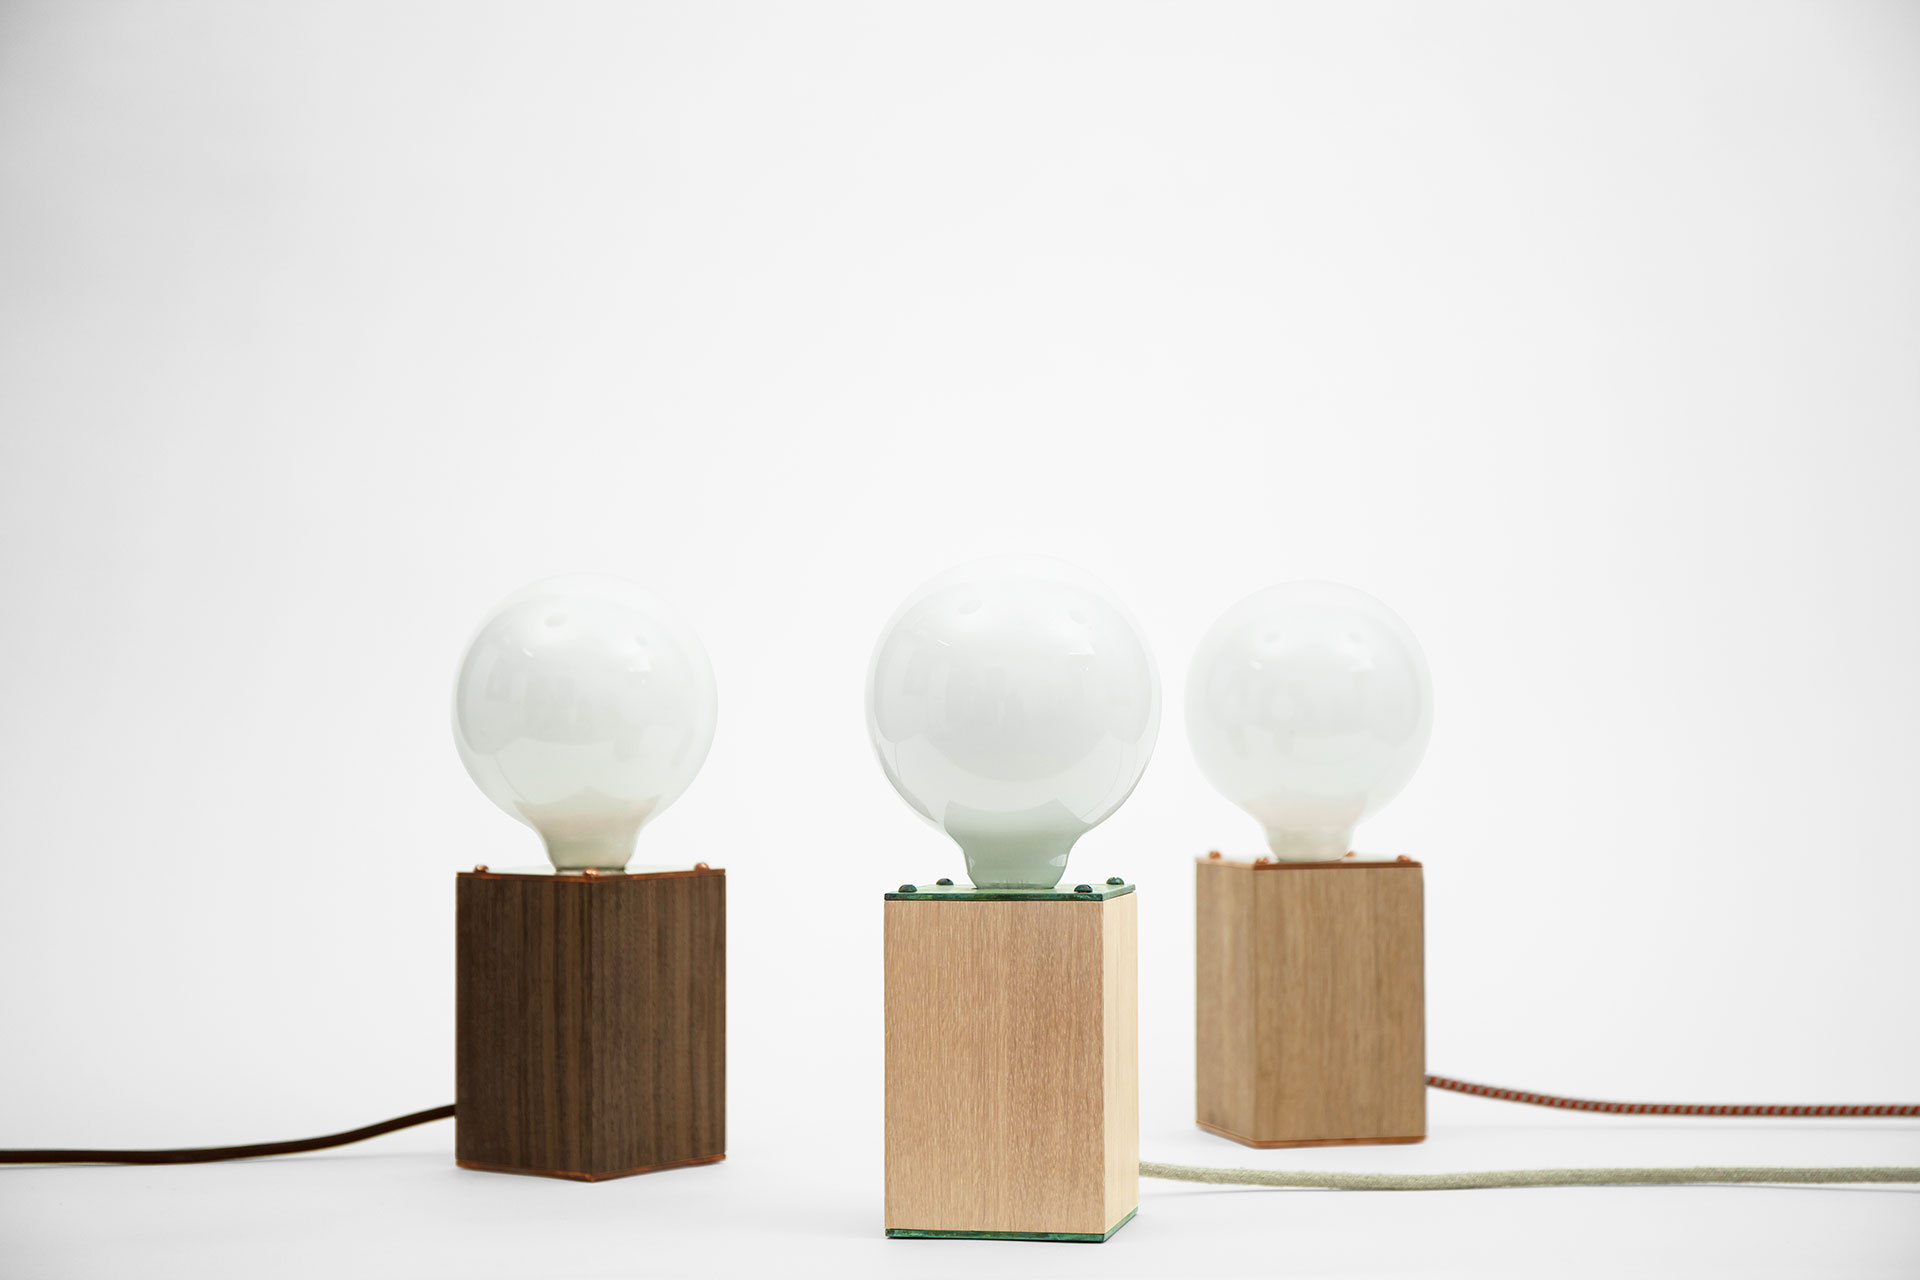 Zapalgo-Rando-designers-table-lamp-001-wooden